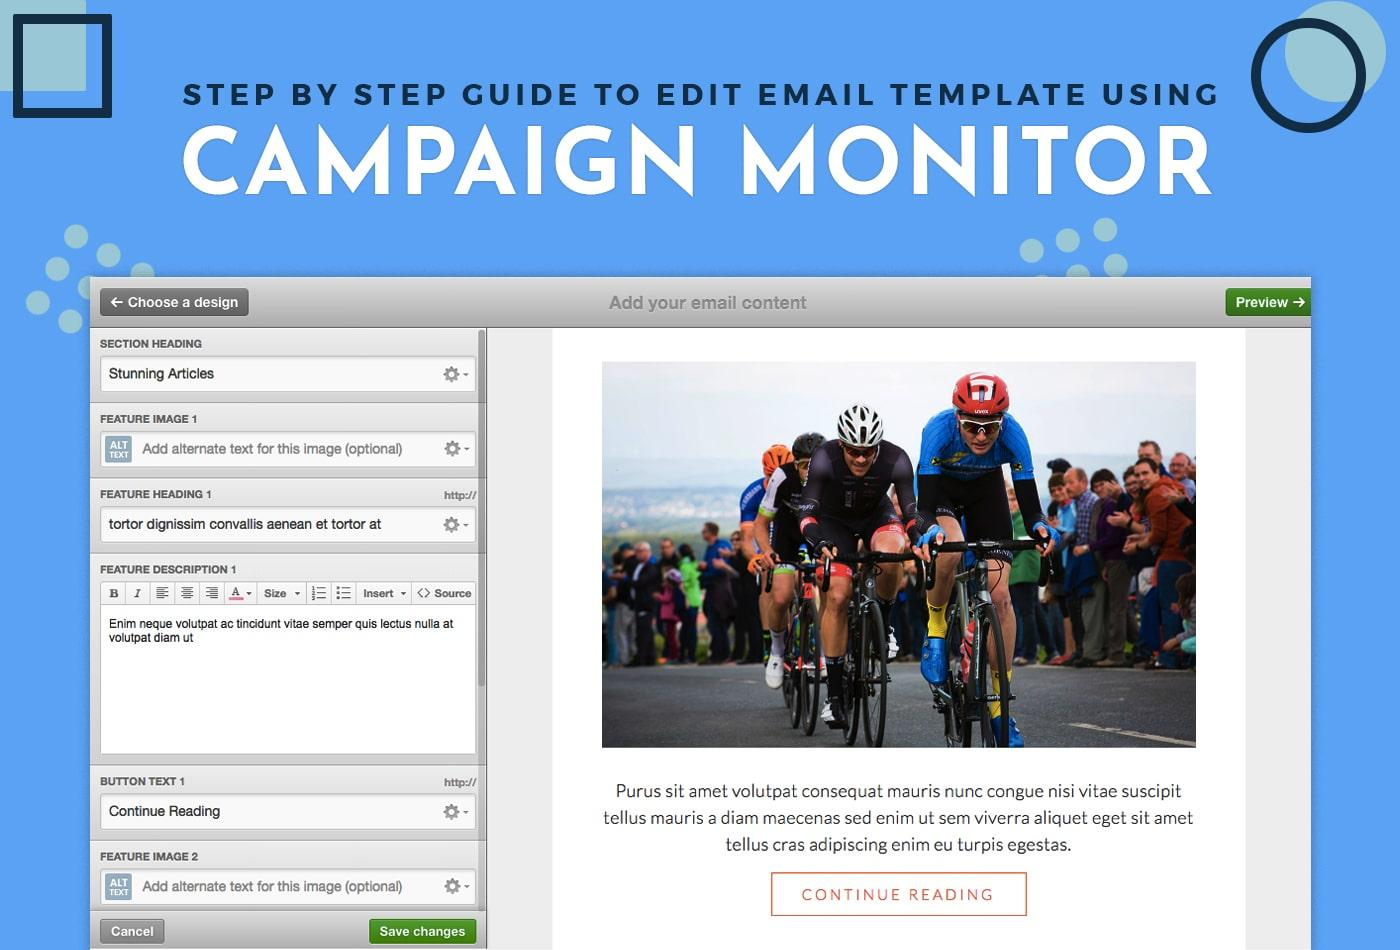 Campaign Monitor Templates Image